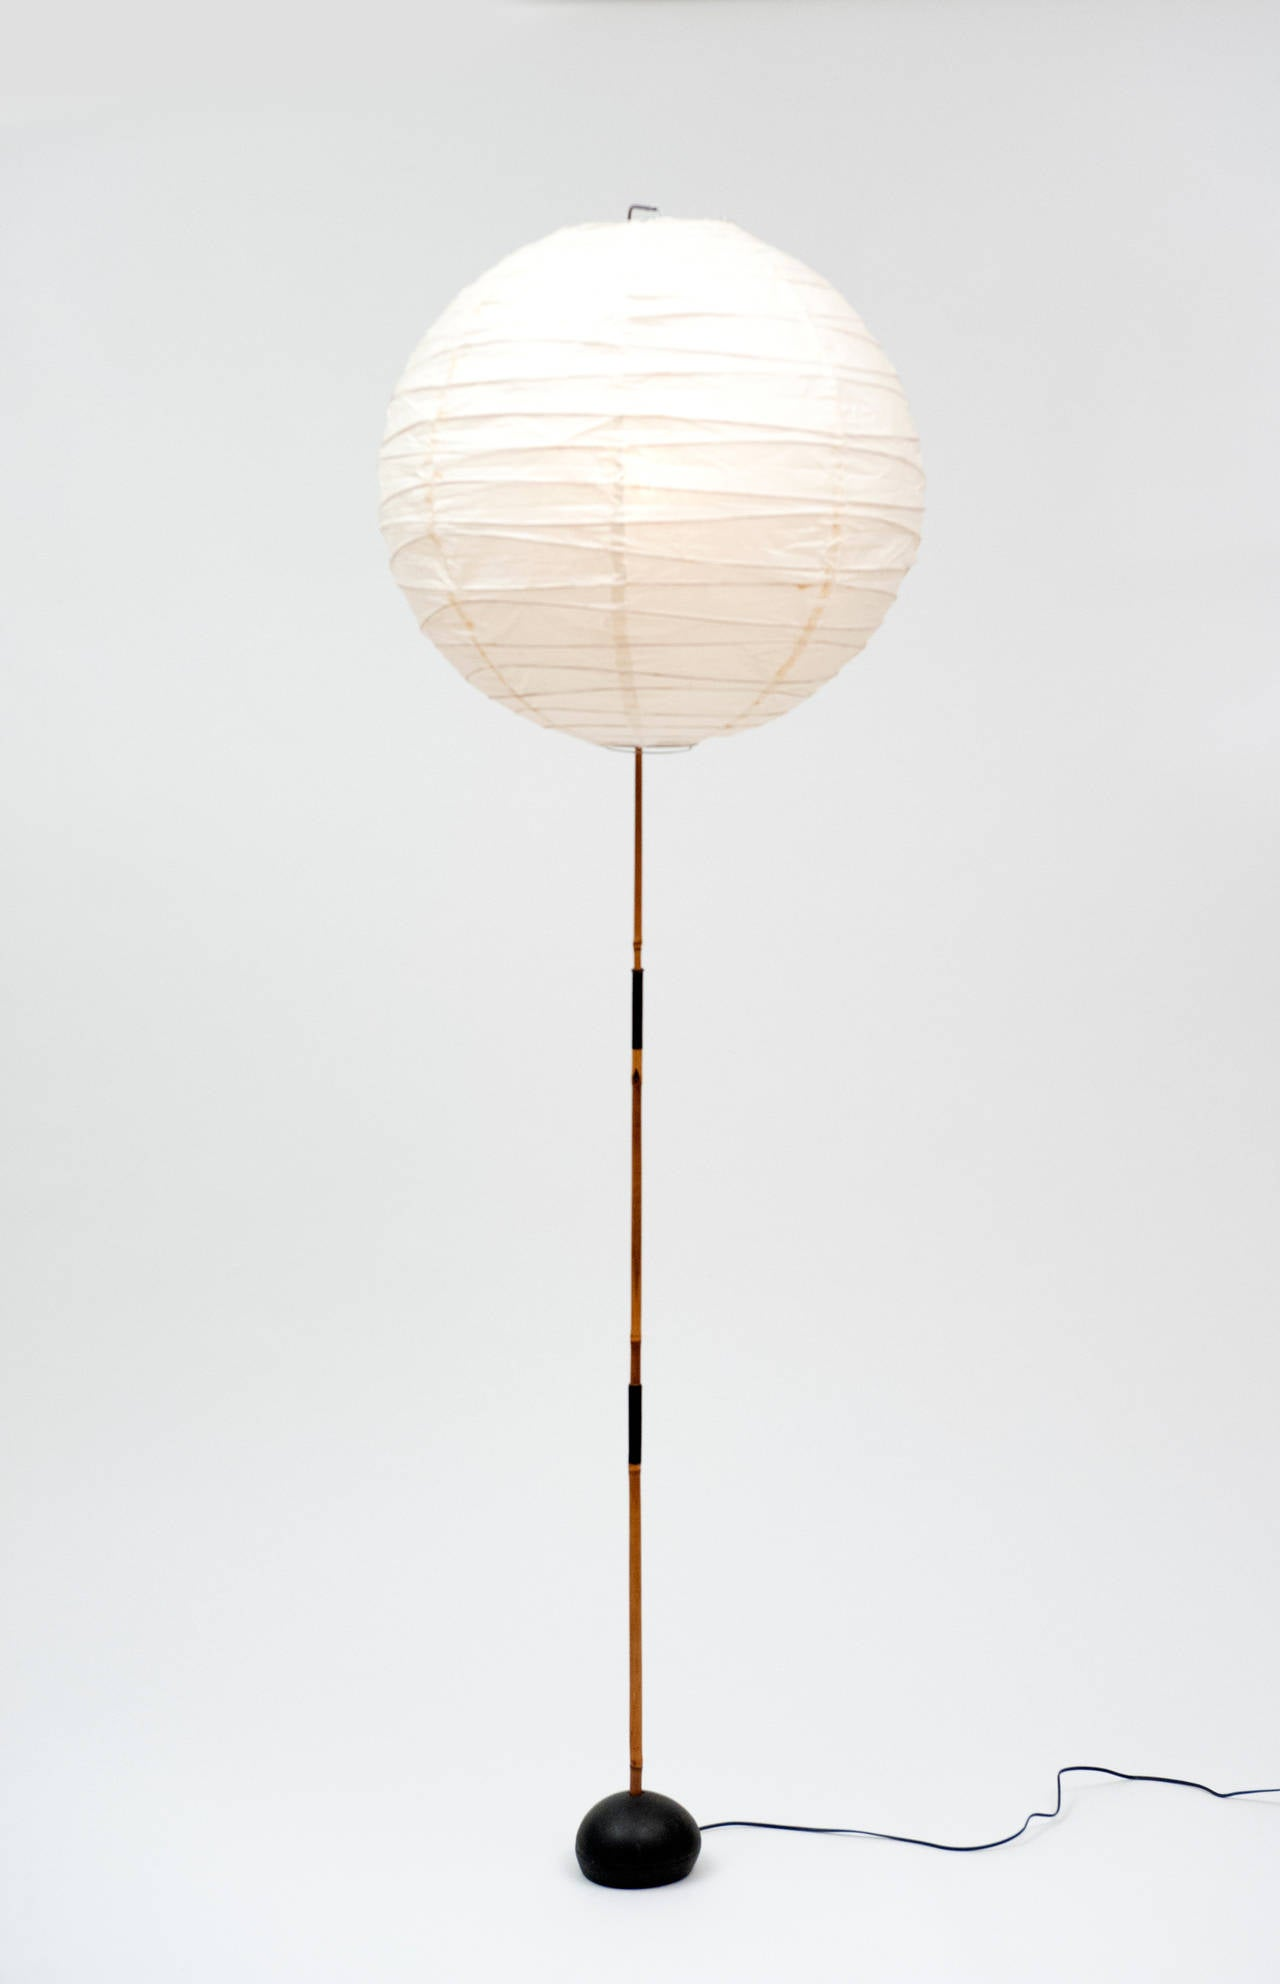 isamu noguchi bamboo and paper lantern floor lamp 1950s With bamboo paper floor lamp